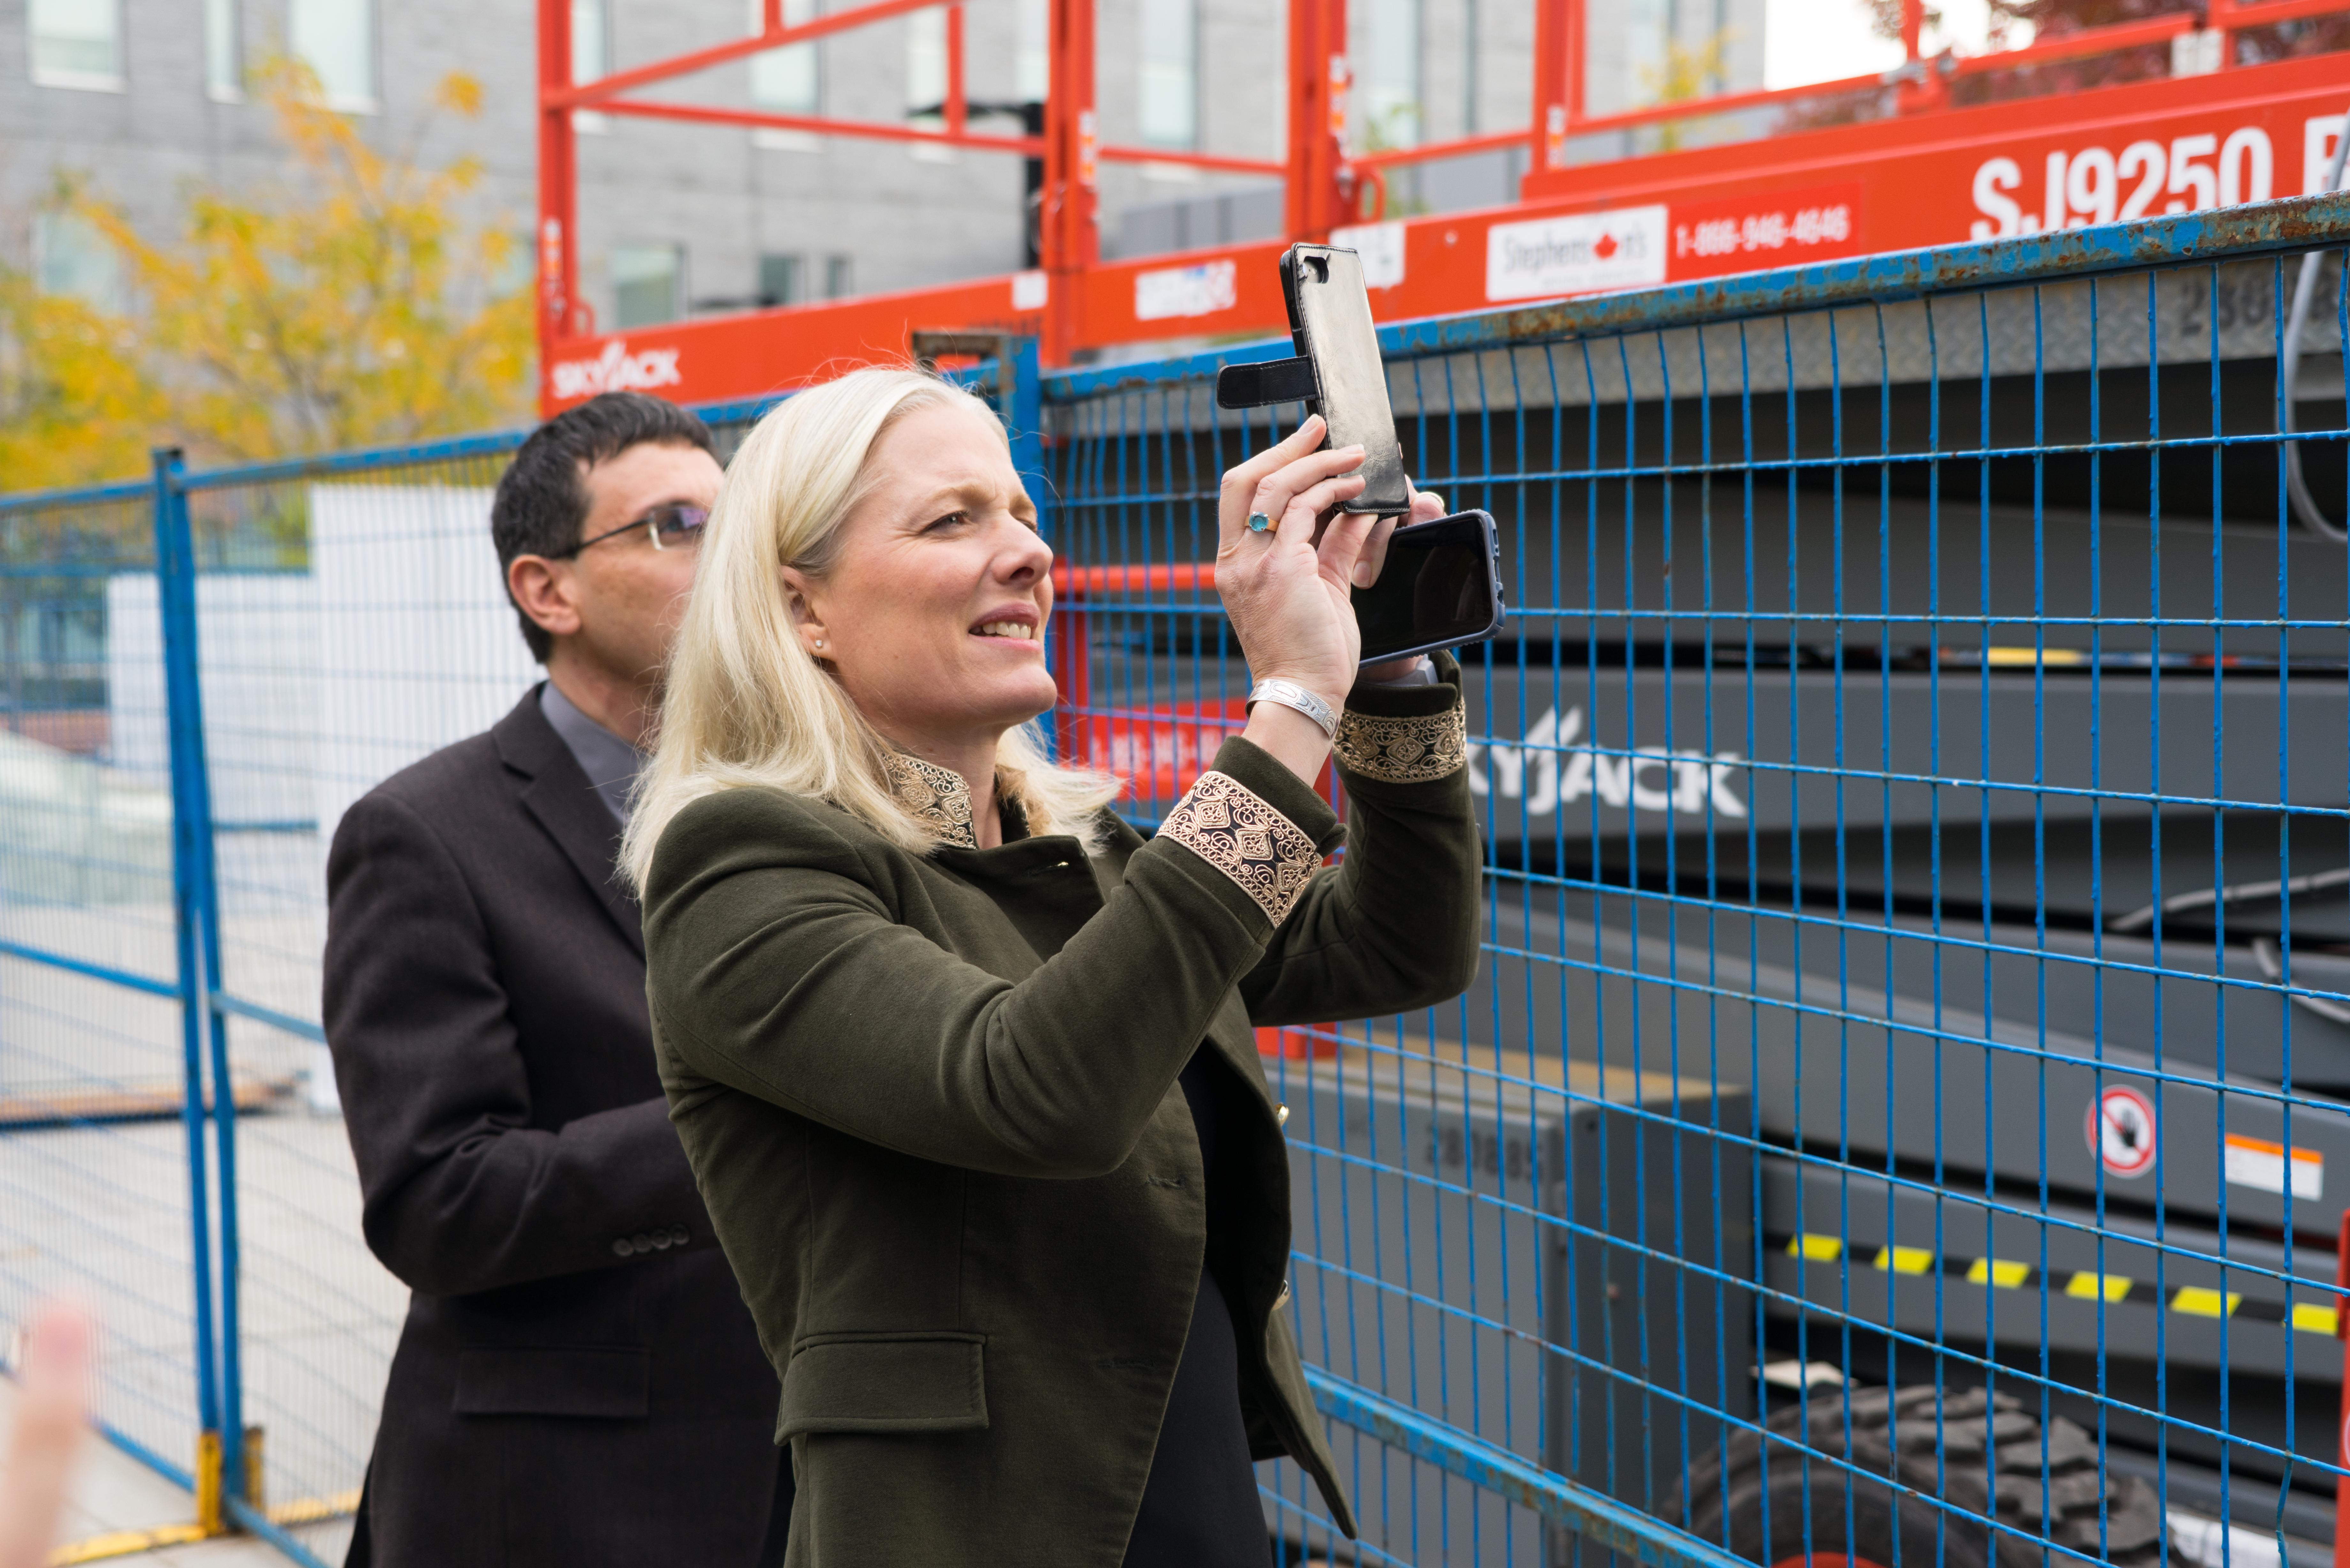 Catherine McKenna checks out the work being done on Humber's NX building